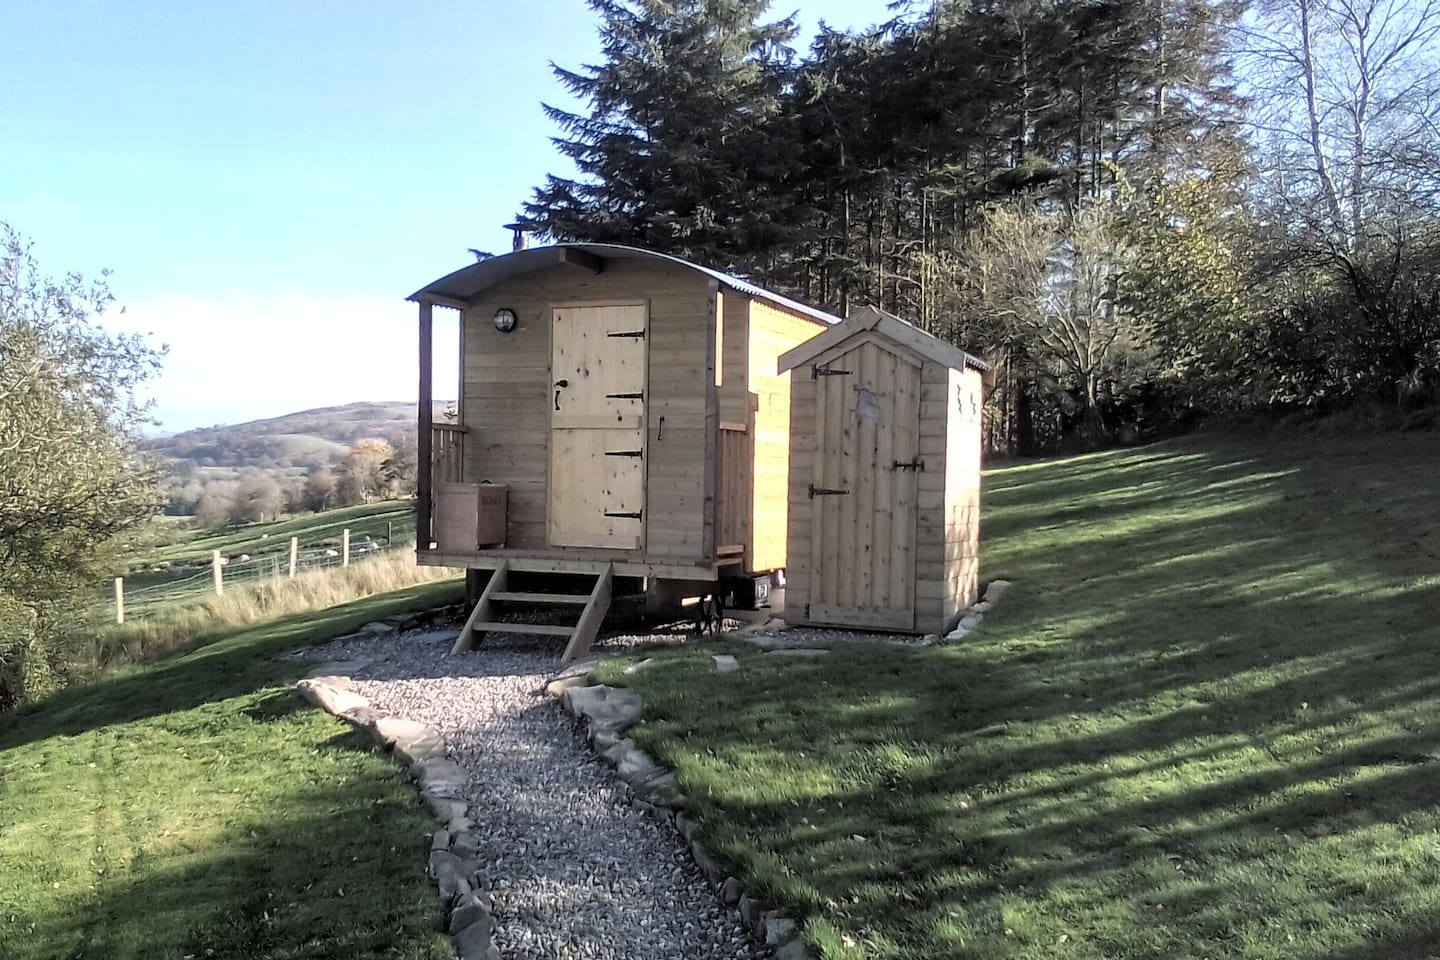 Unique space in a beautiful location close to Snowdonia national park totally off grid.